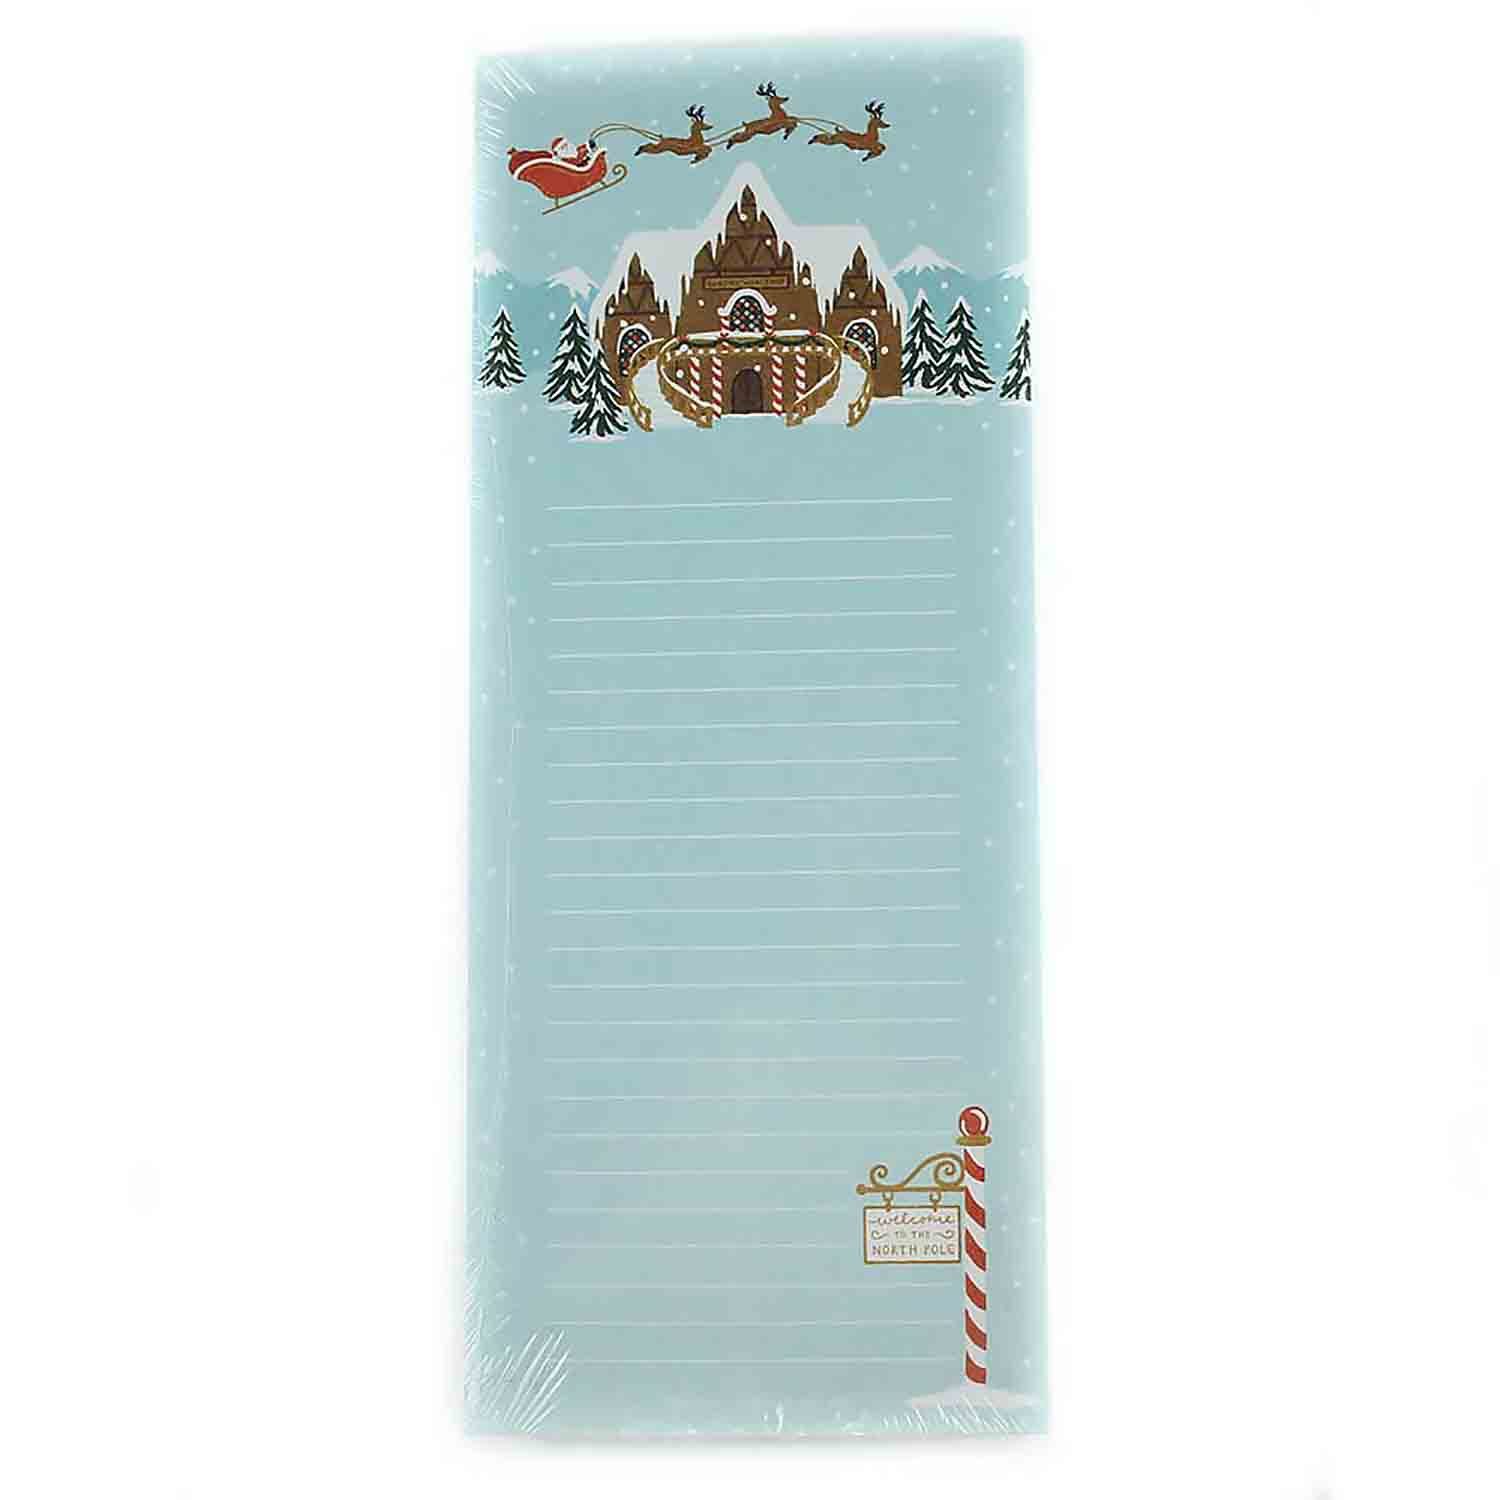 Santa's Village Magnetic Notepad